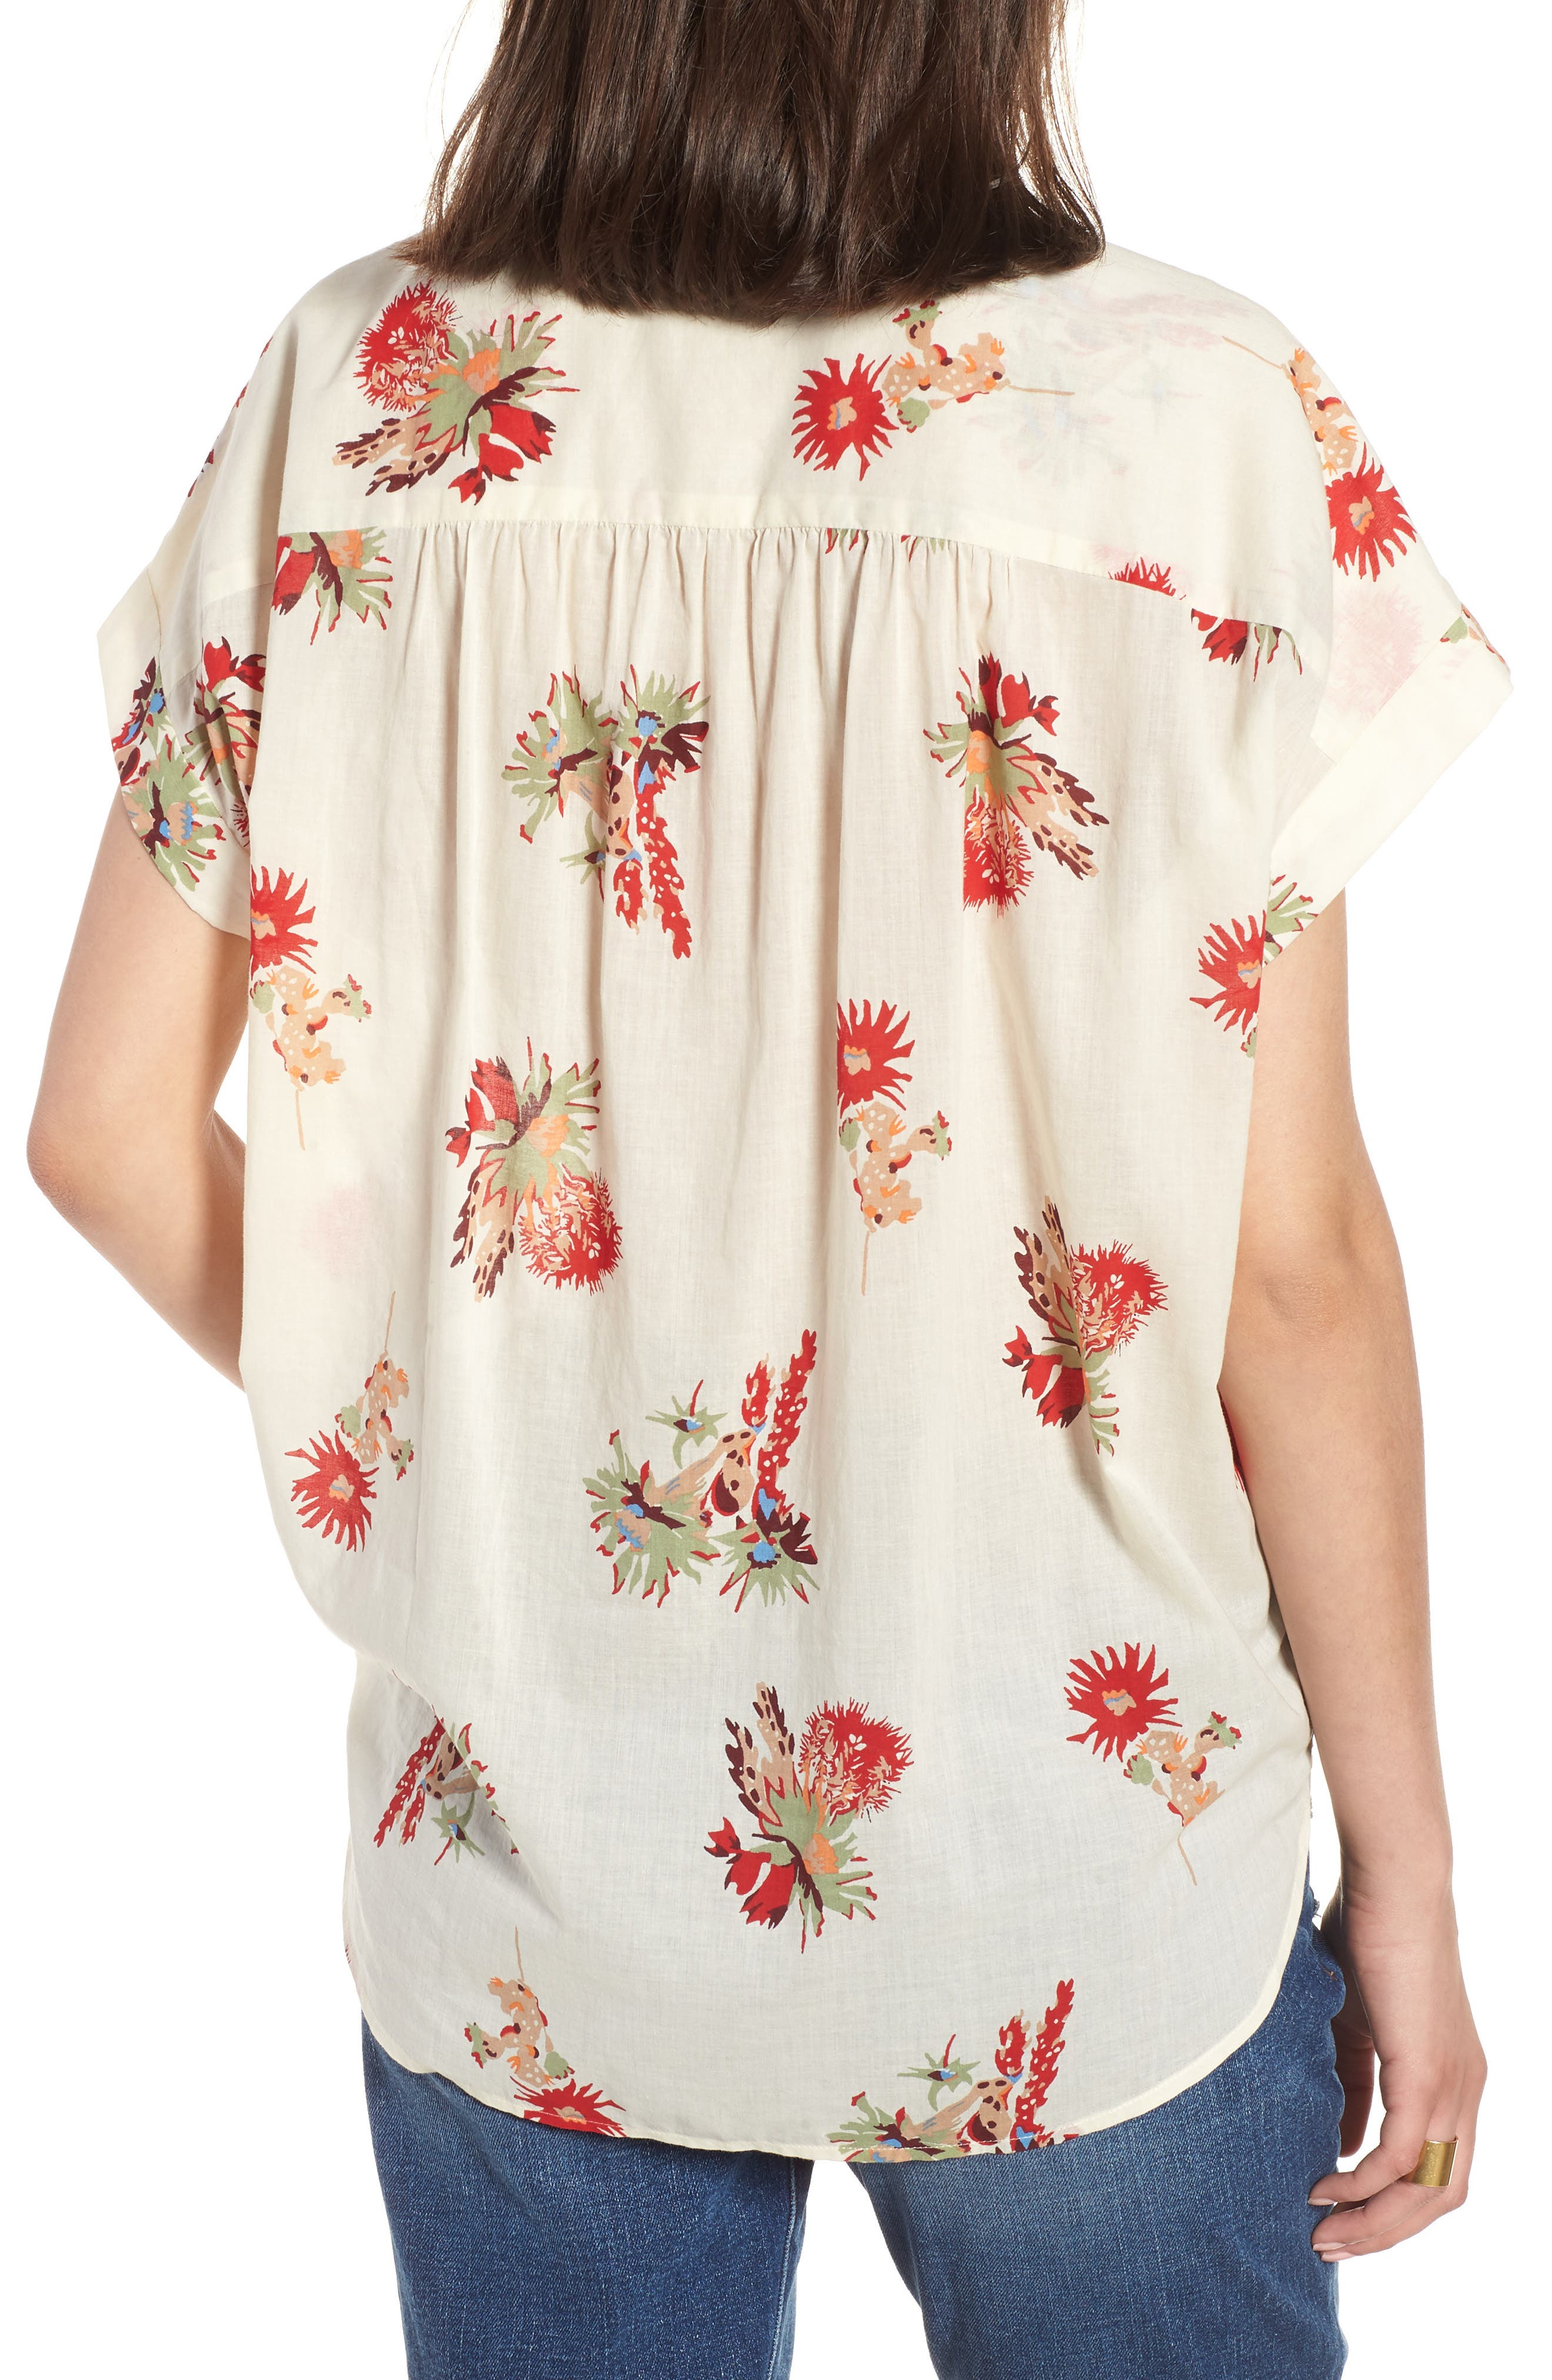 Central Cactus Floral Shirt,                             Alternate thumbnail 2, color,                             100